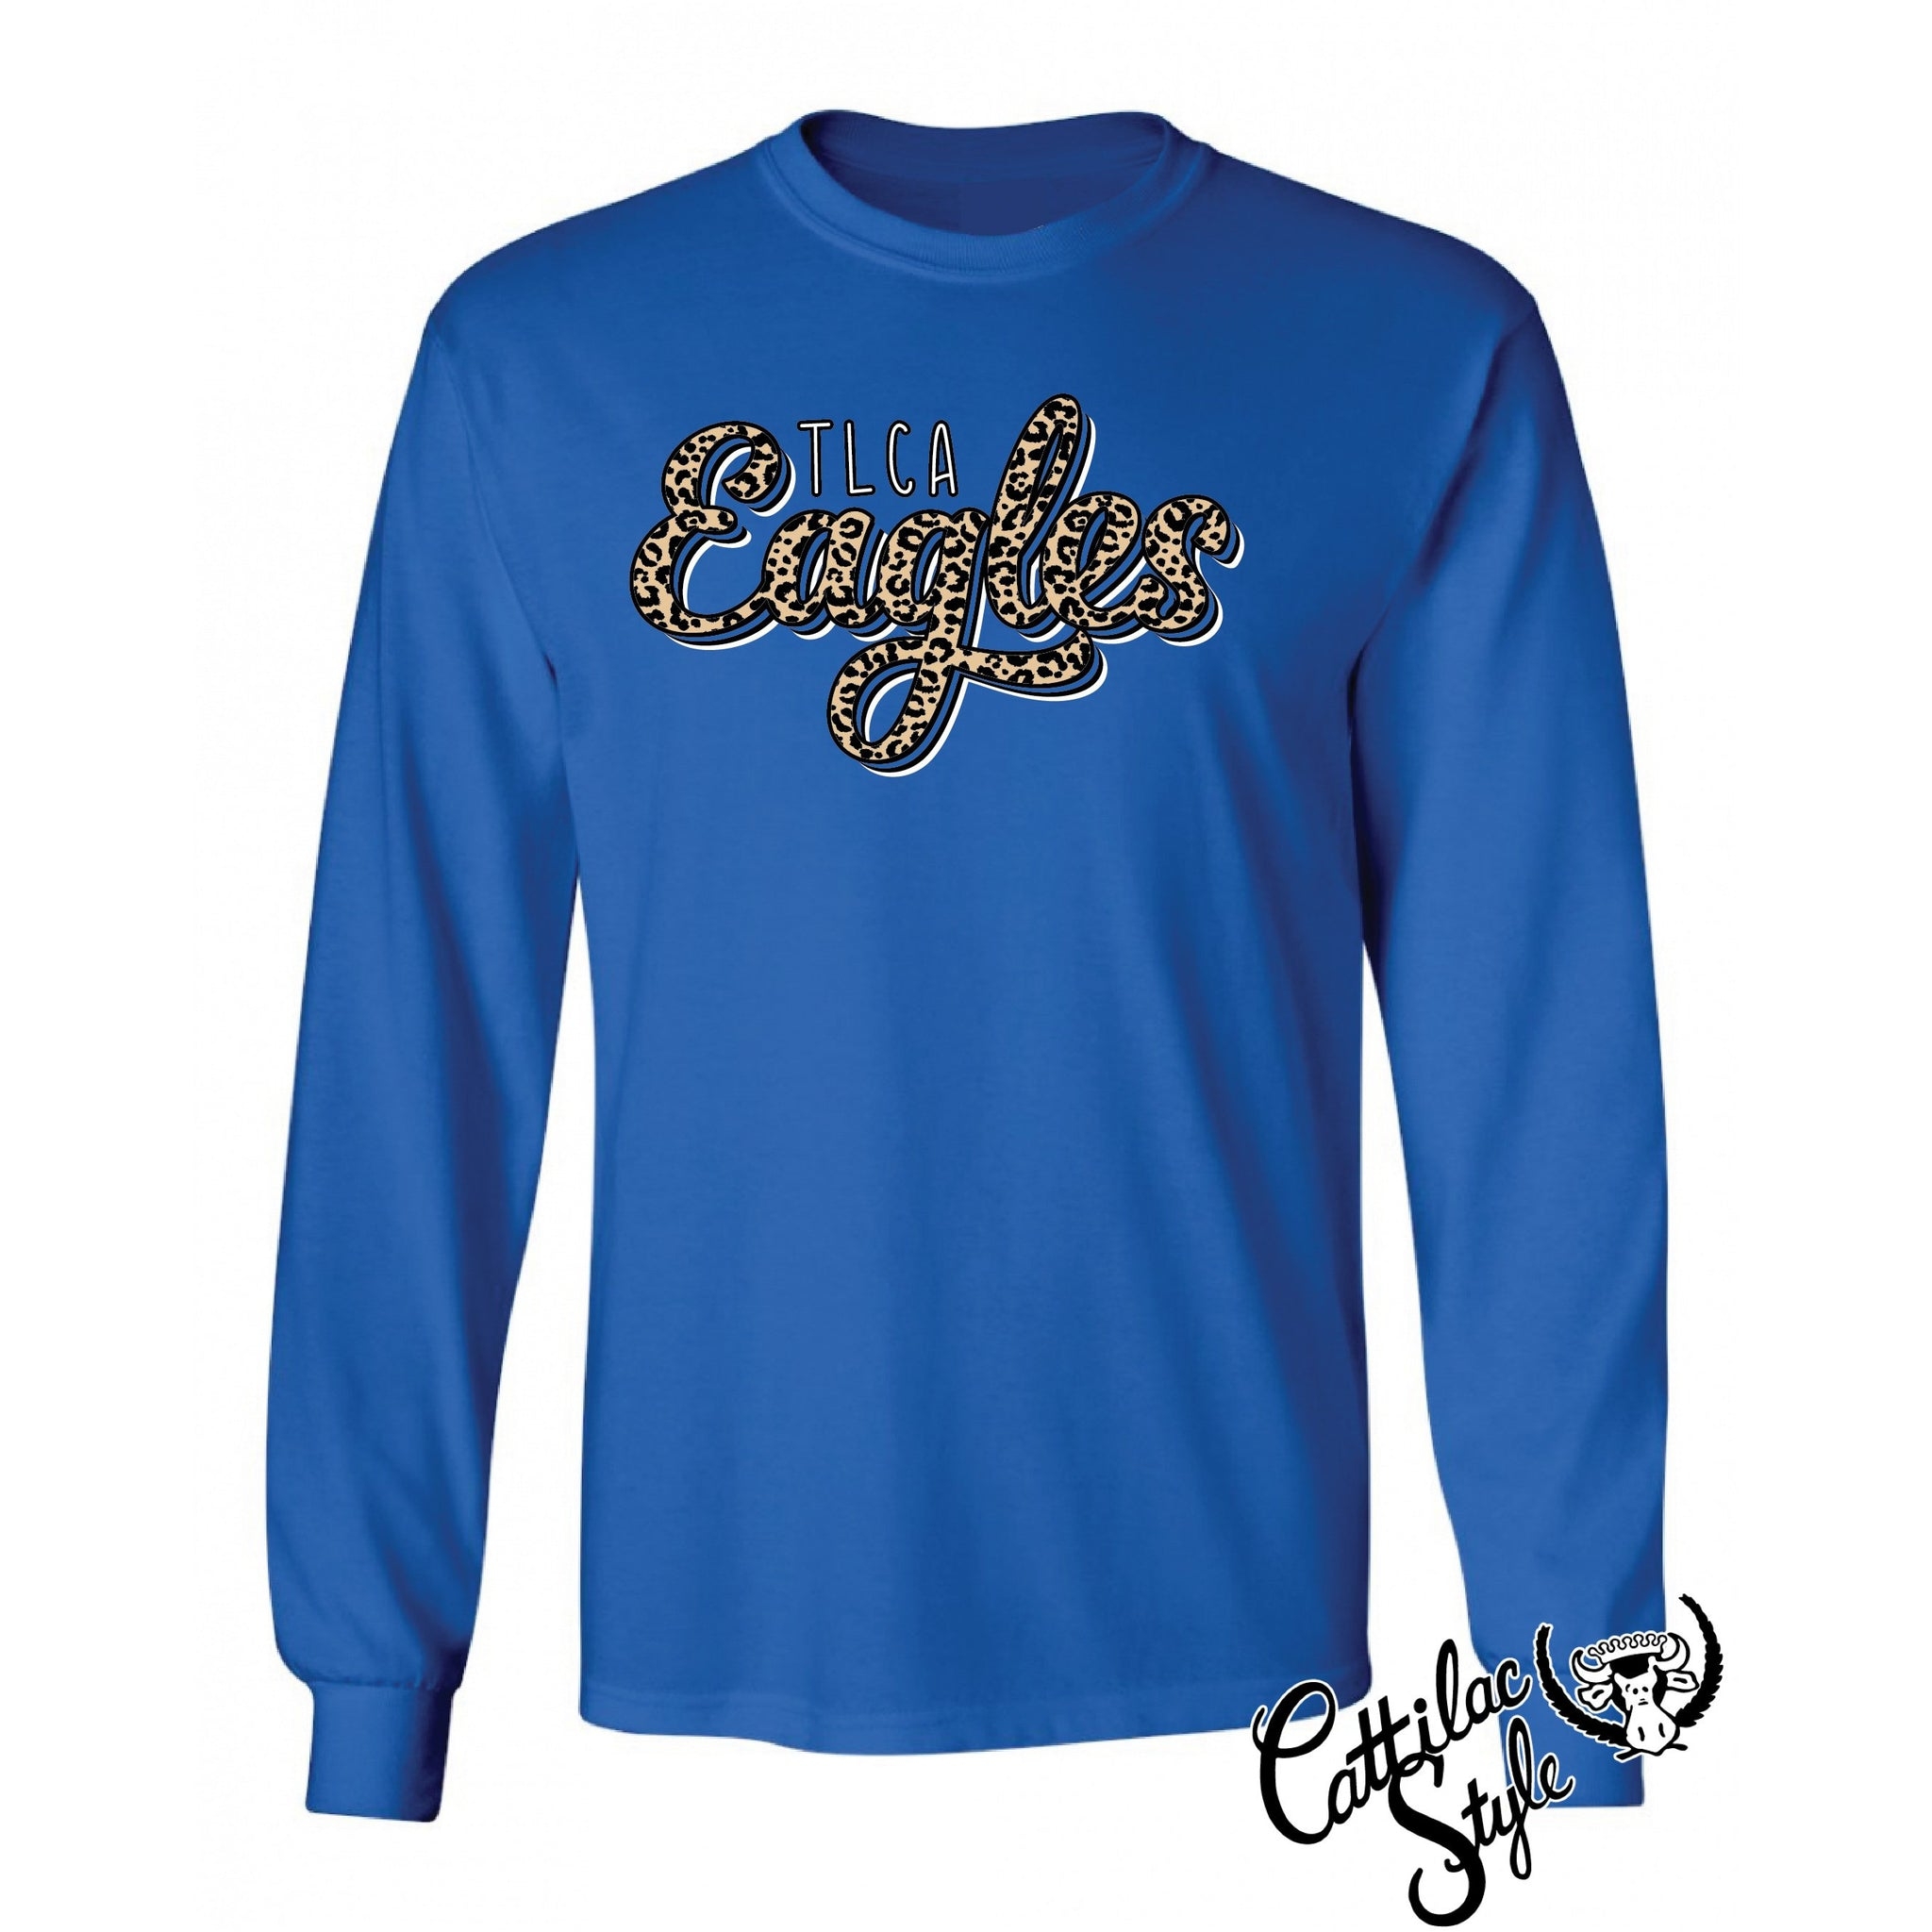 TLCA Eagles - Animal Print Script Long Sleeve T-Shirt